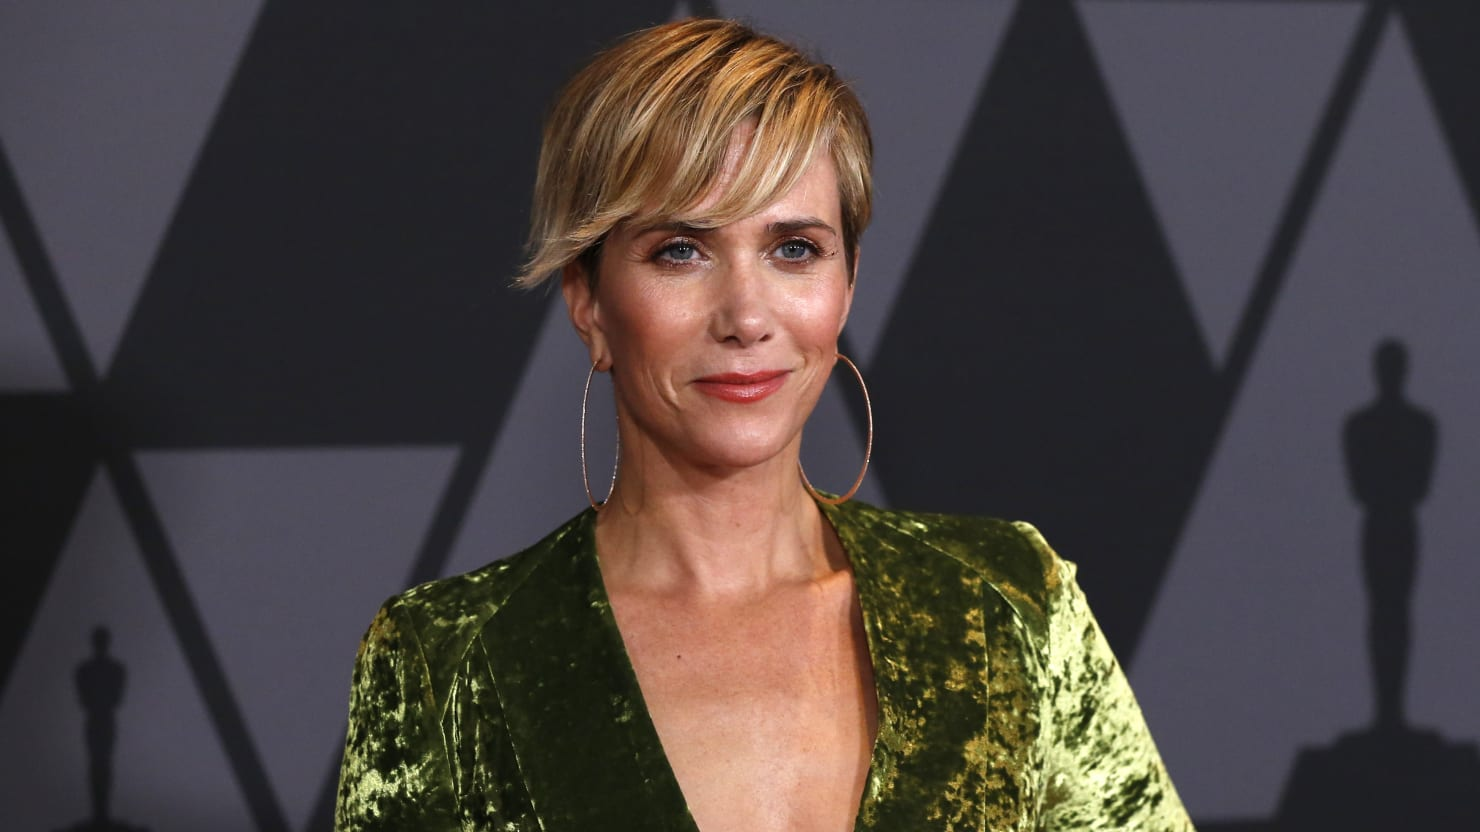 New Comedy Starring Kristen Wiig Pulls Out of Georgia After State Signs 'Heartbeat' Abortion Bill